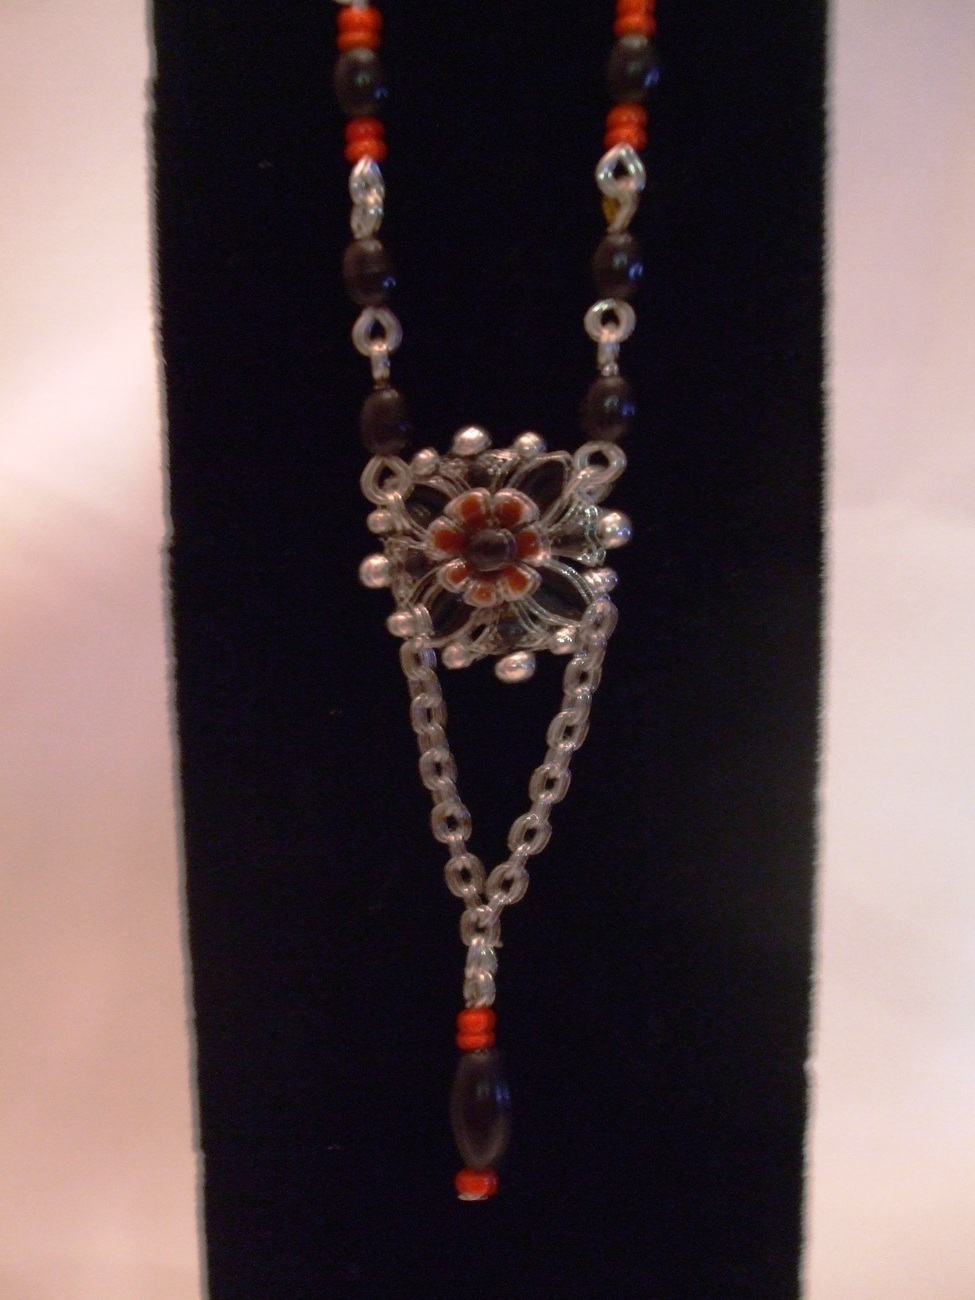 Enamel Flower Beaded Chain Necklace with Earrings